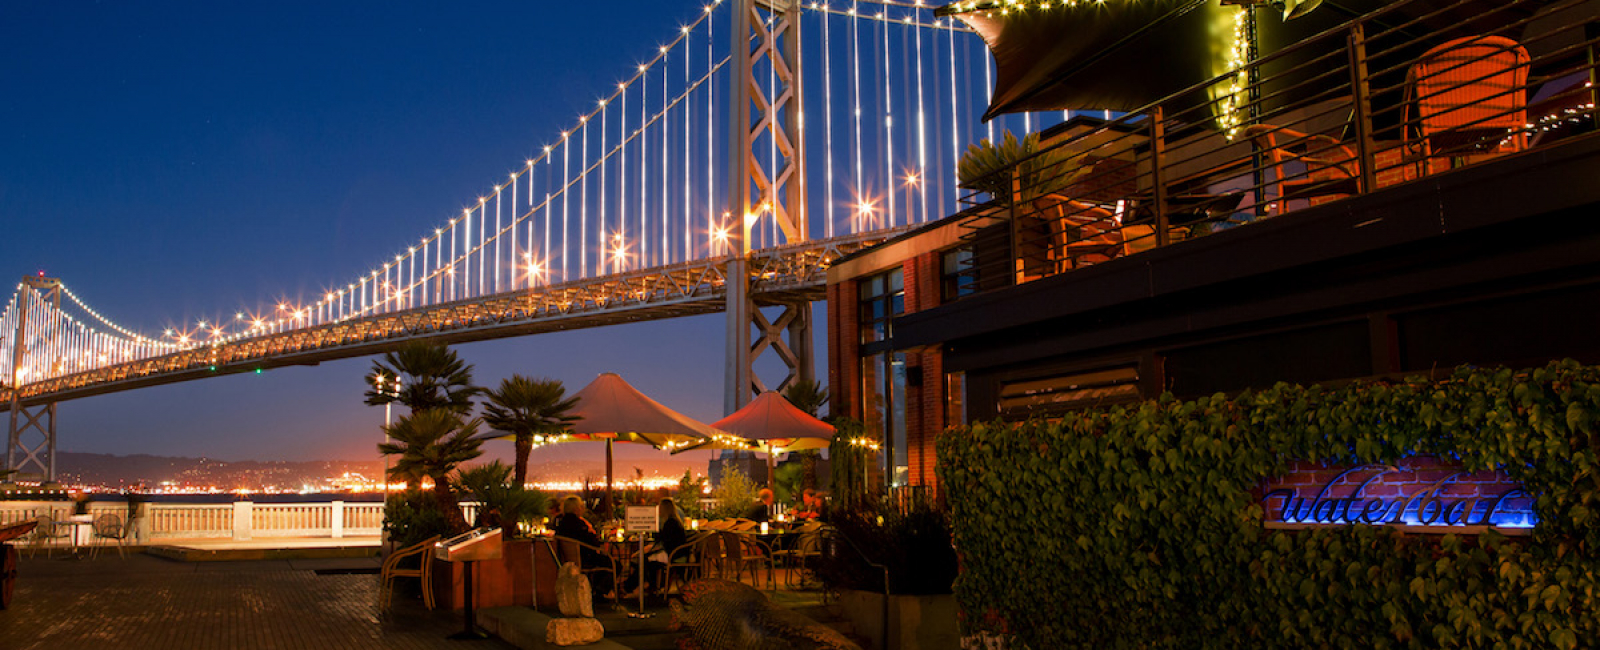 Dine with a View: 100 Most Scenic Restaurants in America 2019